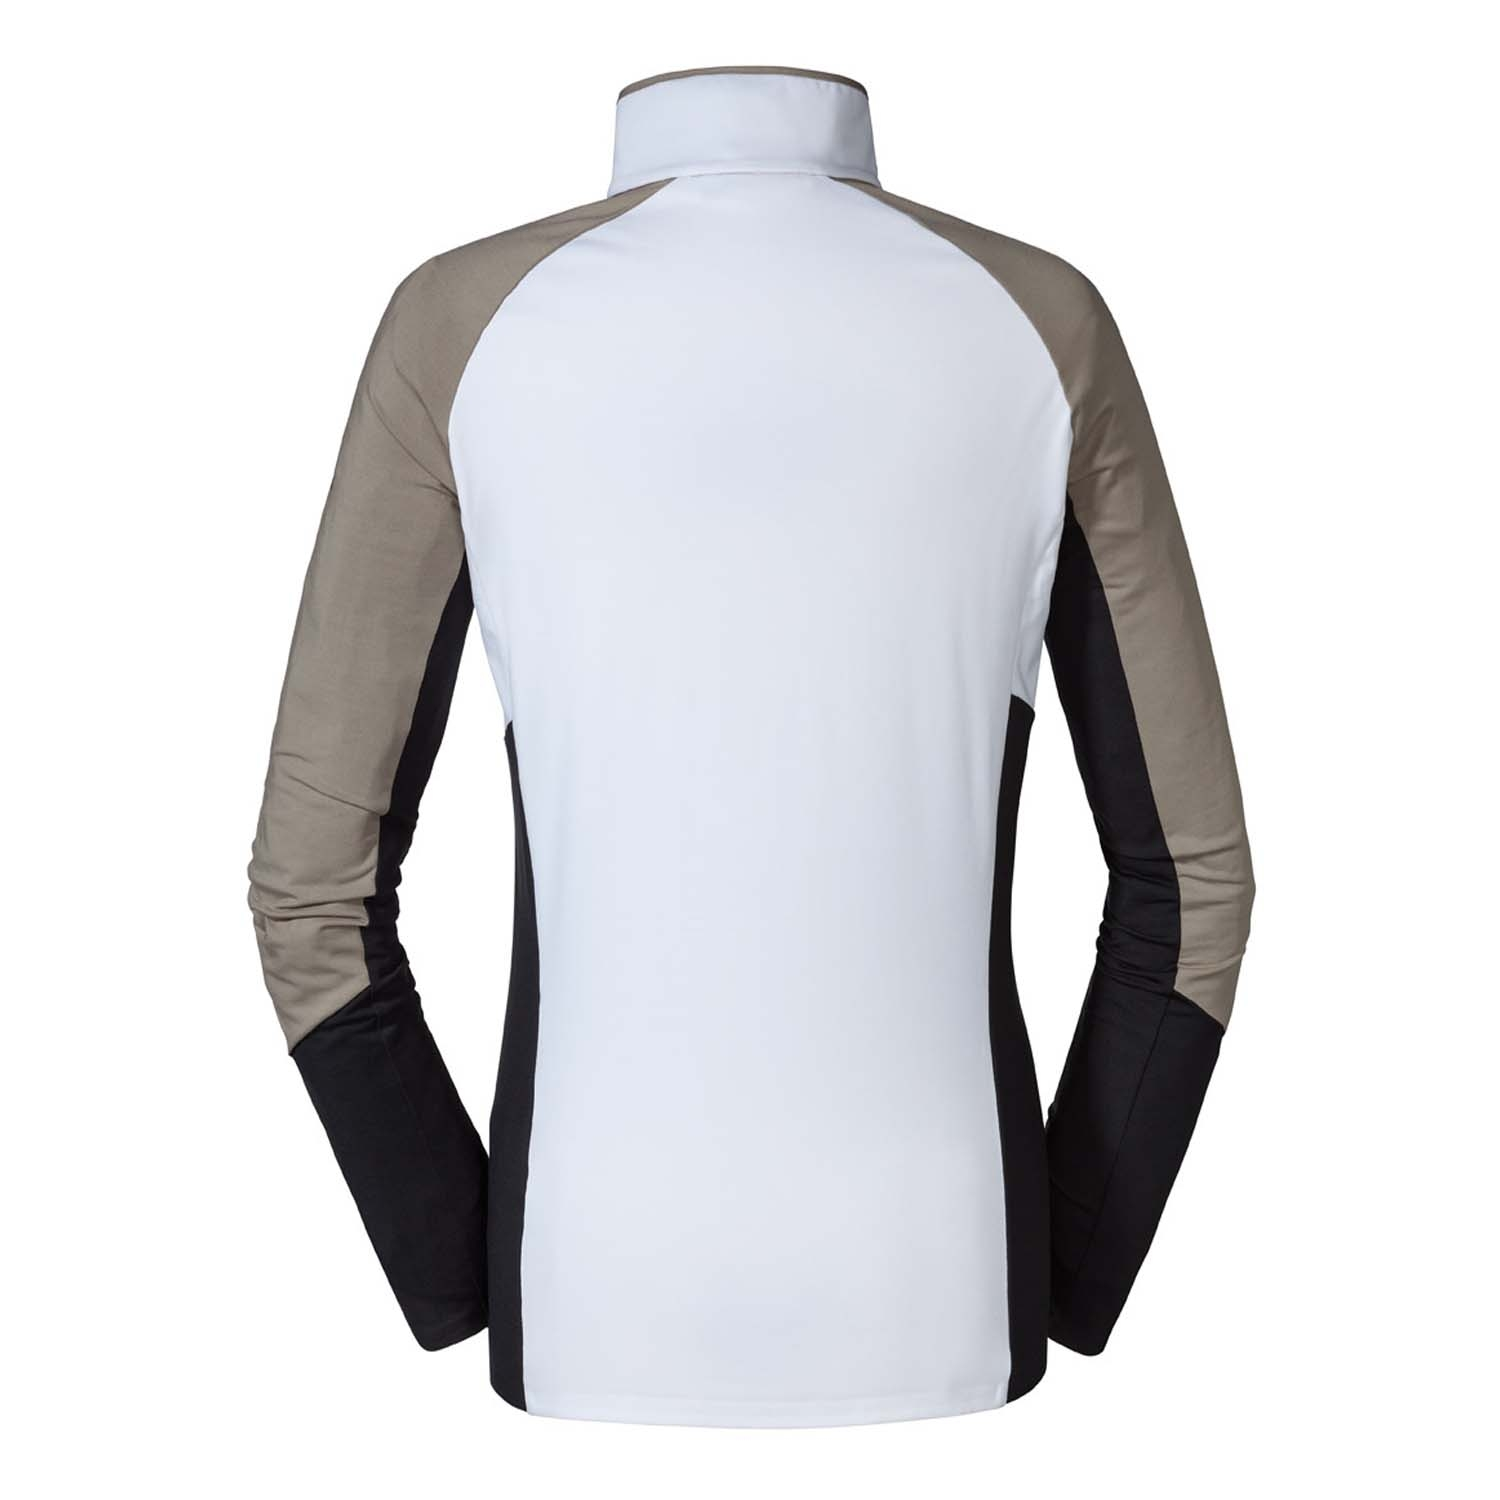 Schoffel Juonli Long Sleeve Top White/Taupe 2021